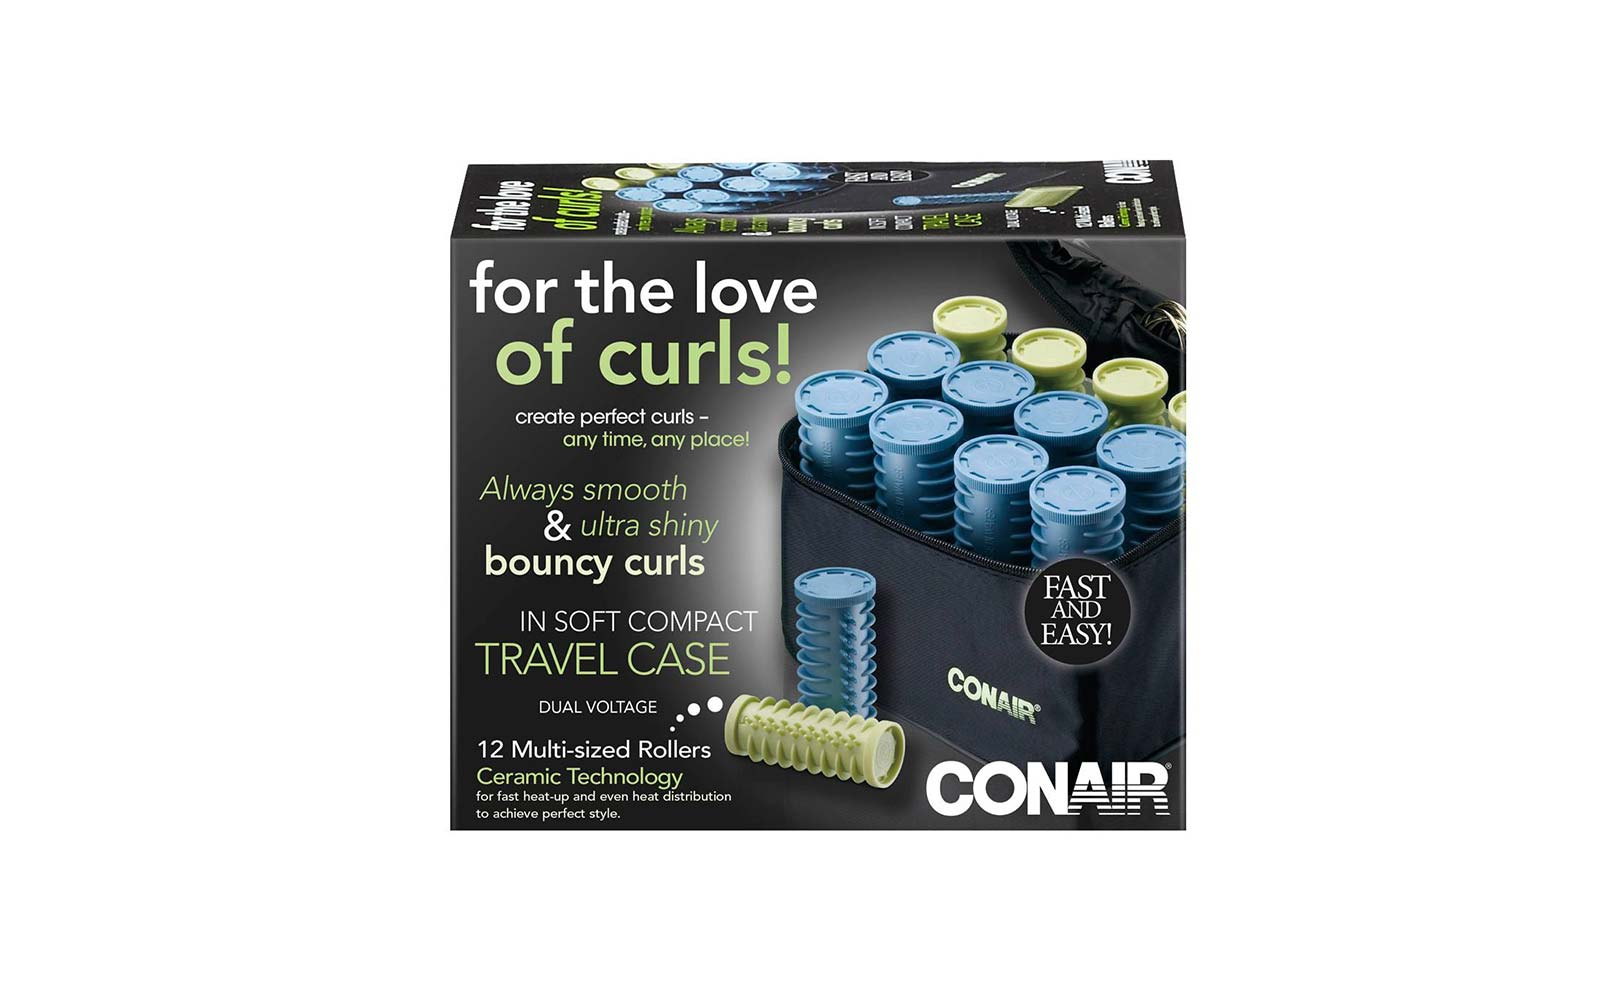 Conair travel hair curlers